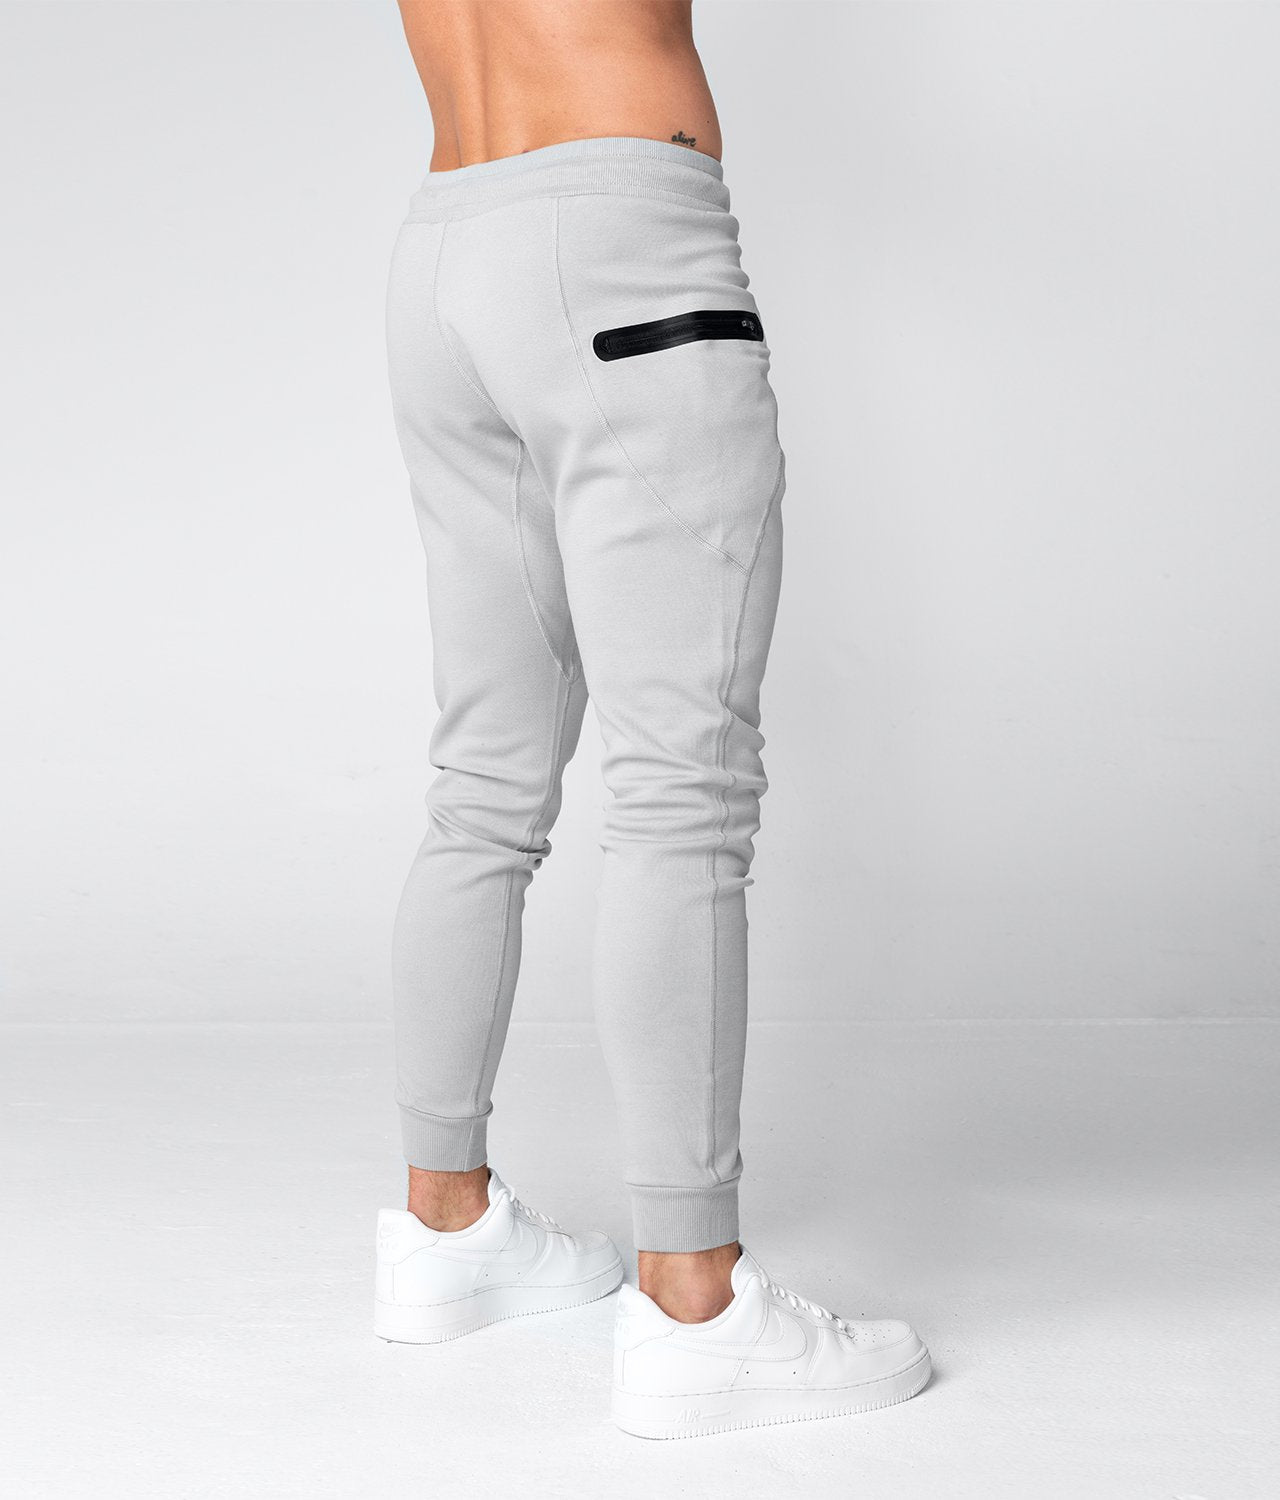 Born Tough United Kingdom Core Fit Zippered Flatlock Seams Gray Gym Workout Jogger Pants for Men